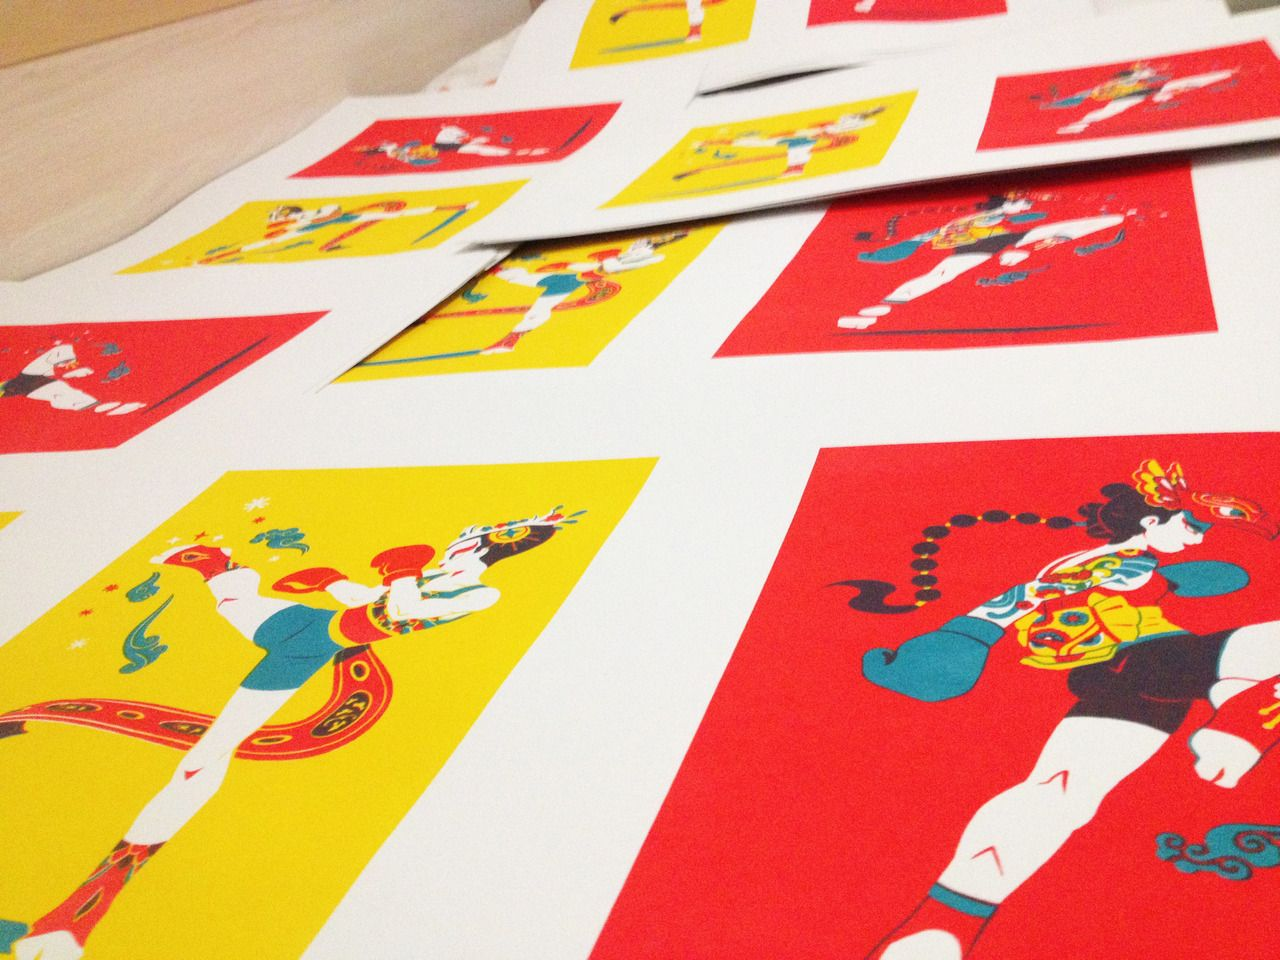 MAIRI — Serigraphy/screen printing project. Belongs to...